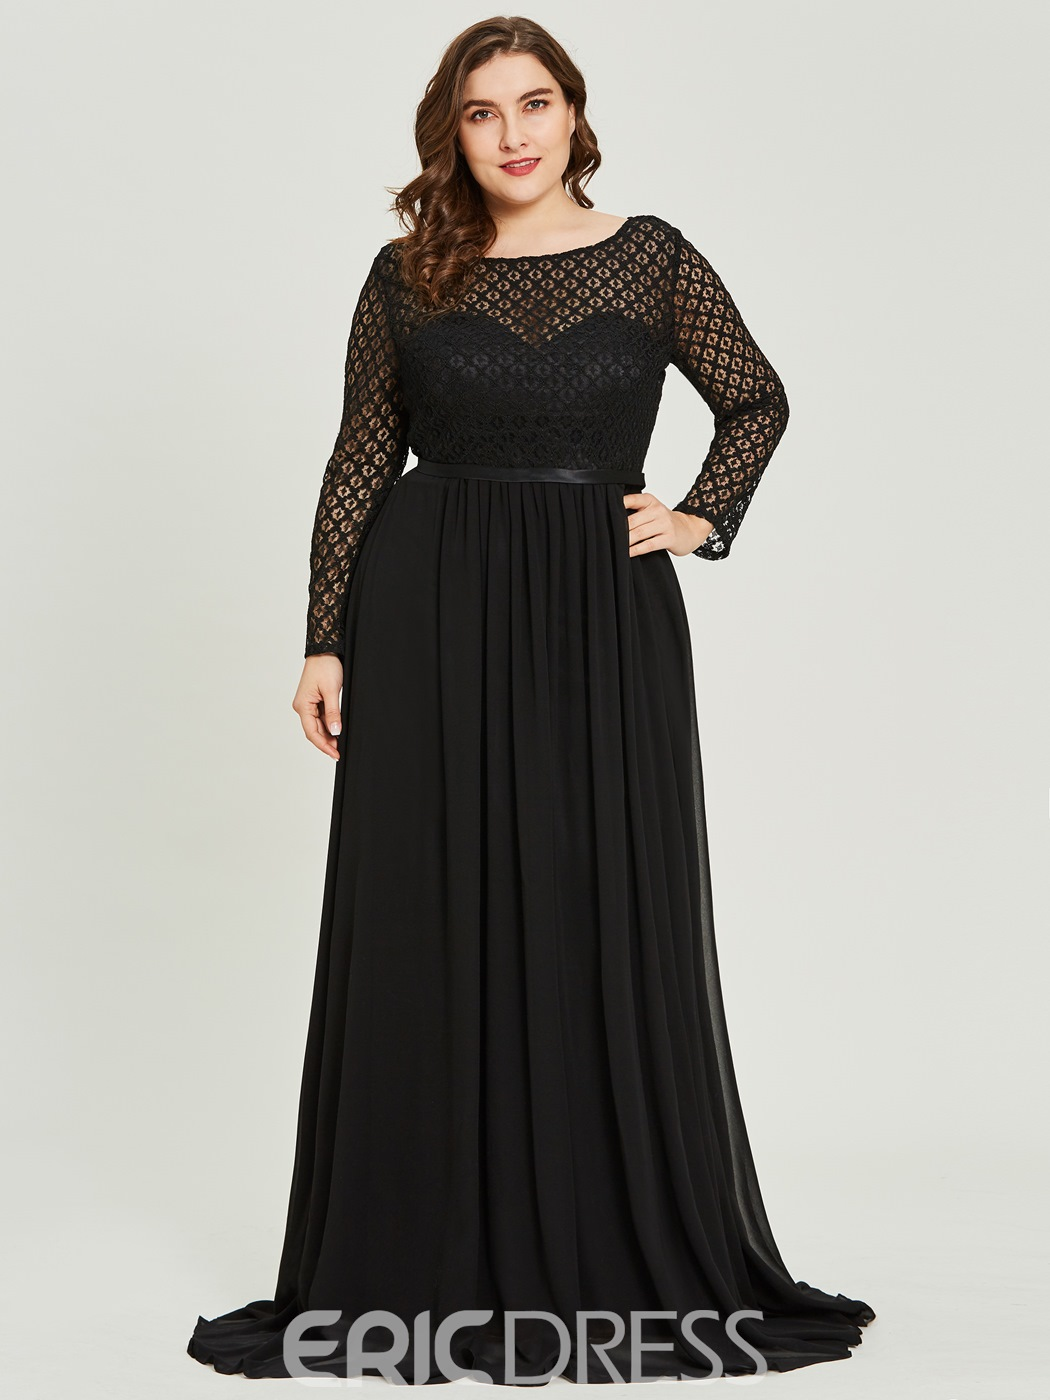 Ericdress Lace Appliques A Line Black Evening Dress